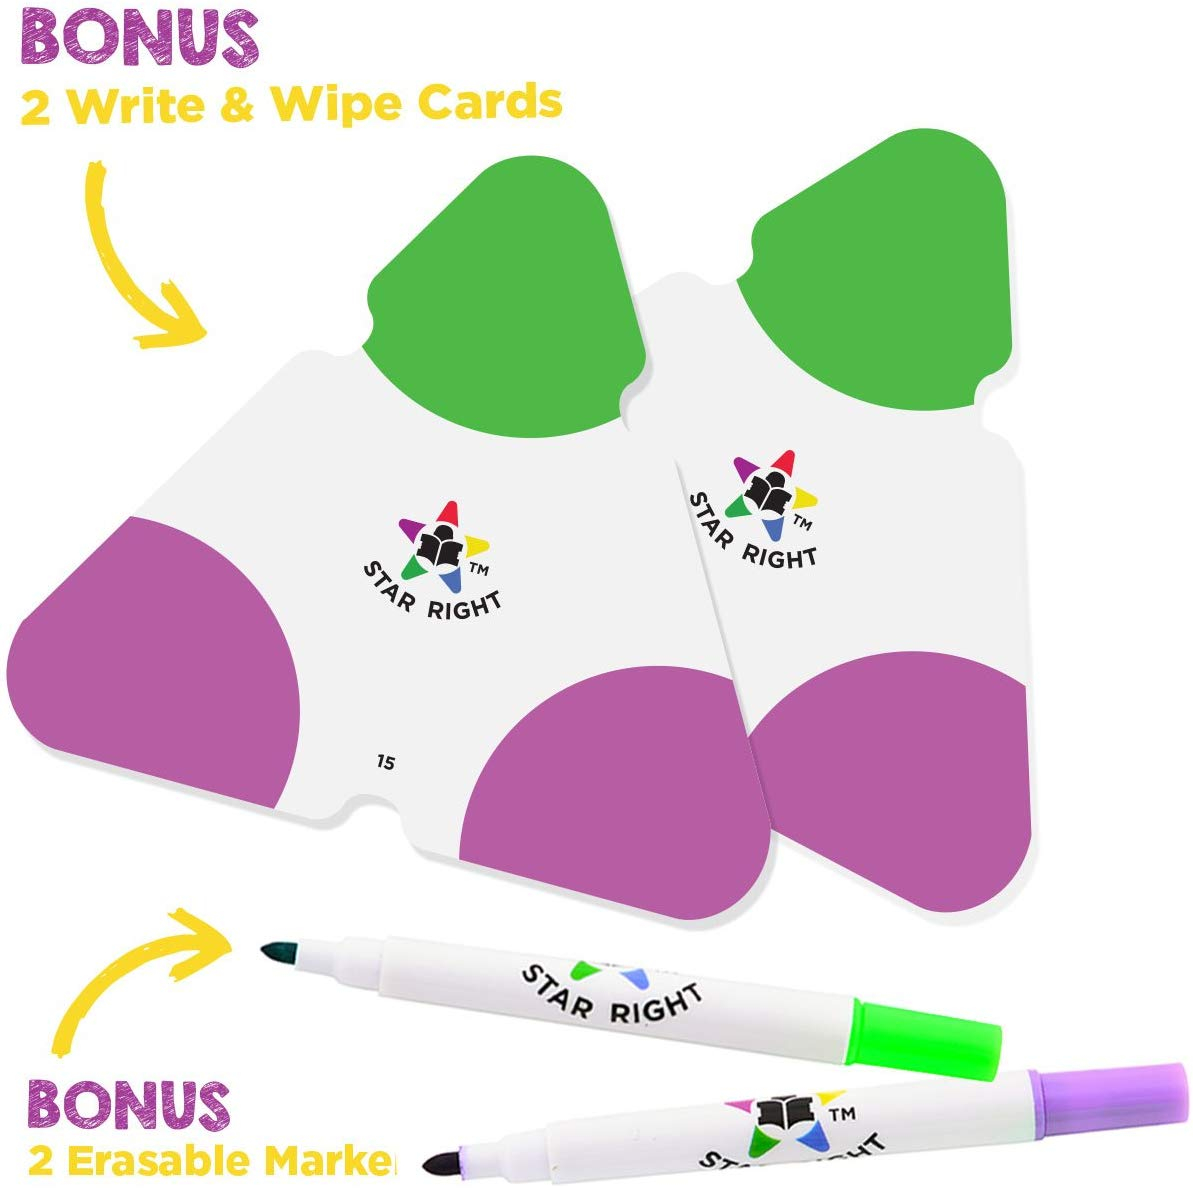 Star Right Math Triangle Flash Cards, Multiplication And Division Facts  0-12, Double-Sided, 2 Write And Wipe Cards Included, 2 Erasable Markers,  For